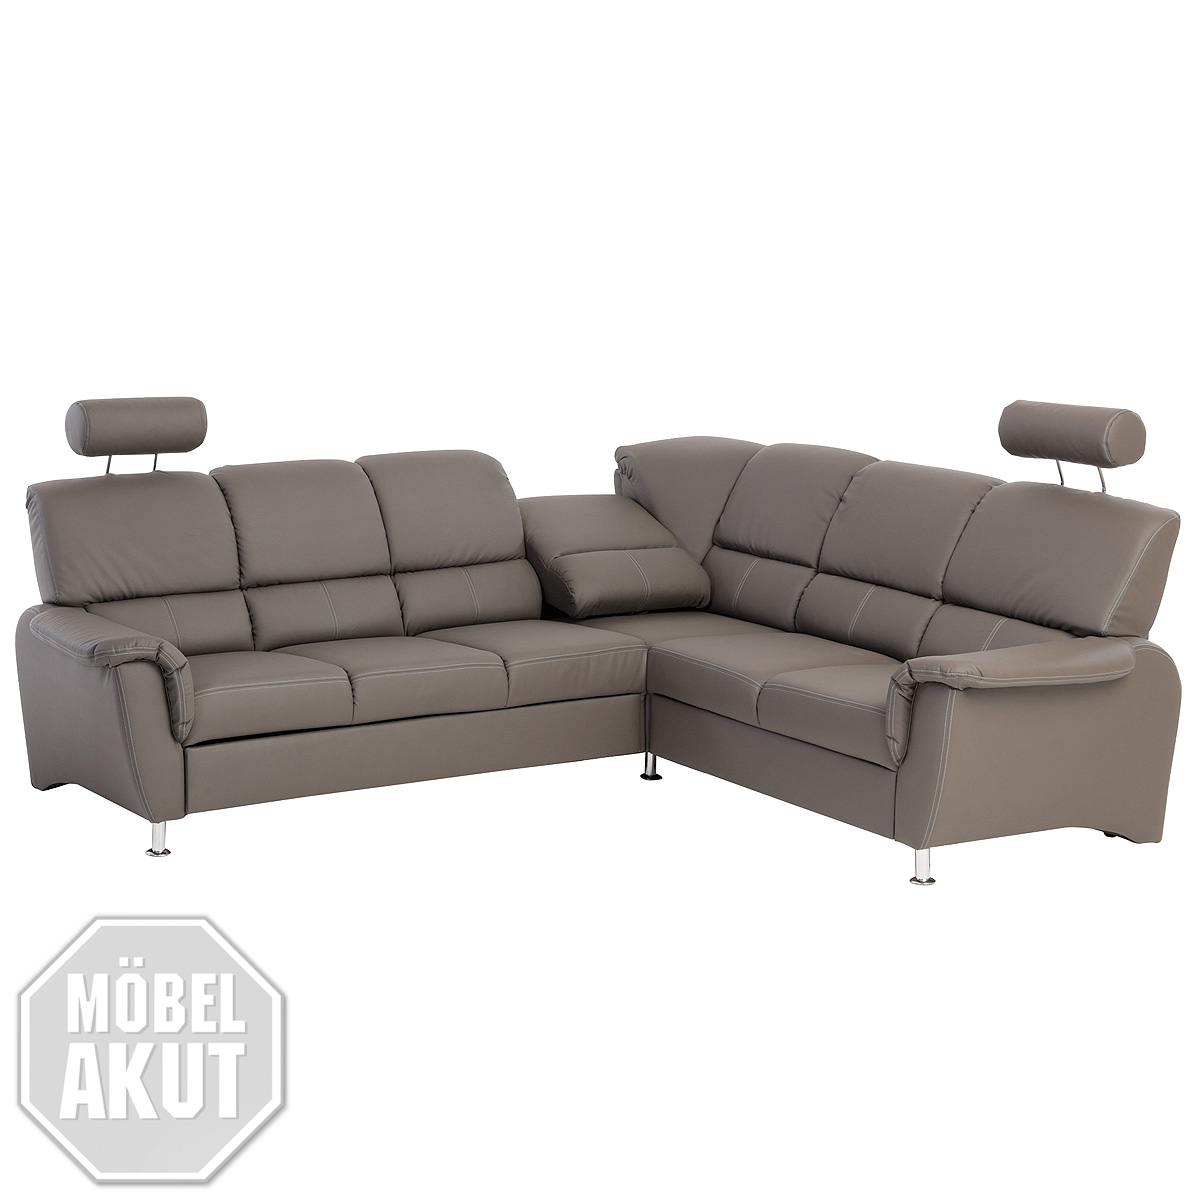 Ecksofa Piazza Sofa In Grau Sofa Sedda Impuls Grau Martinotti Sofa